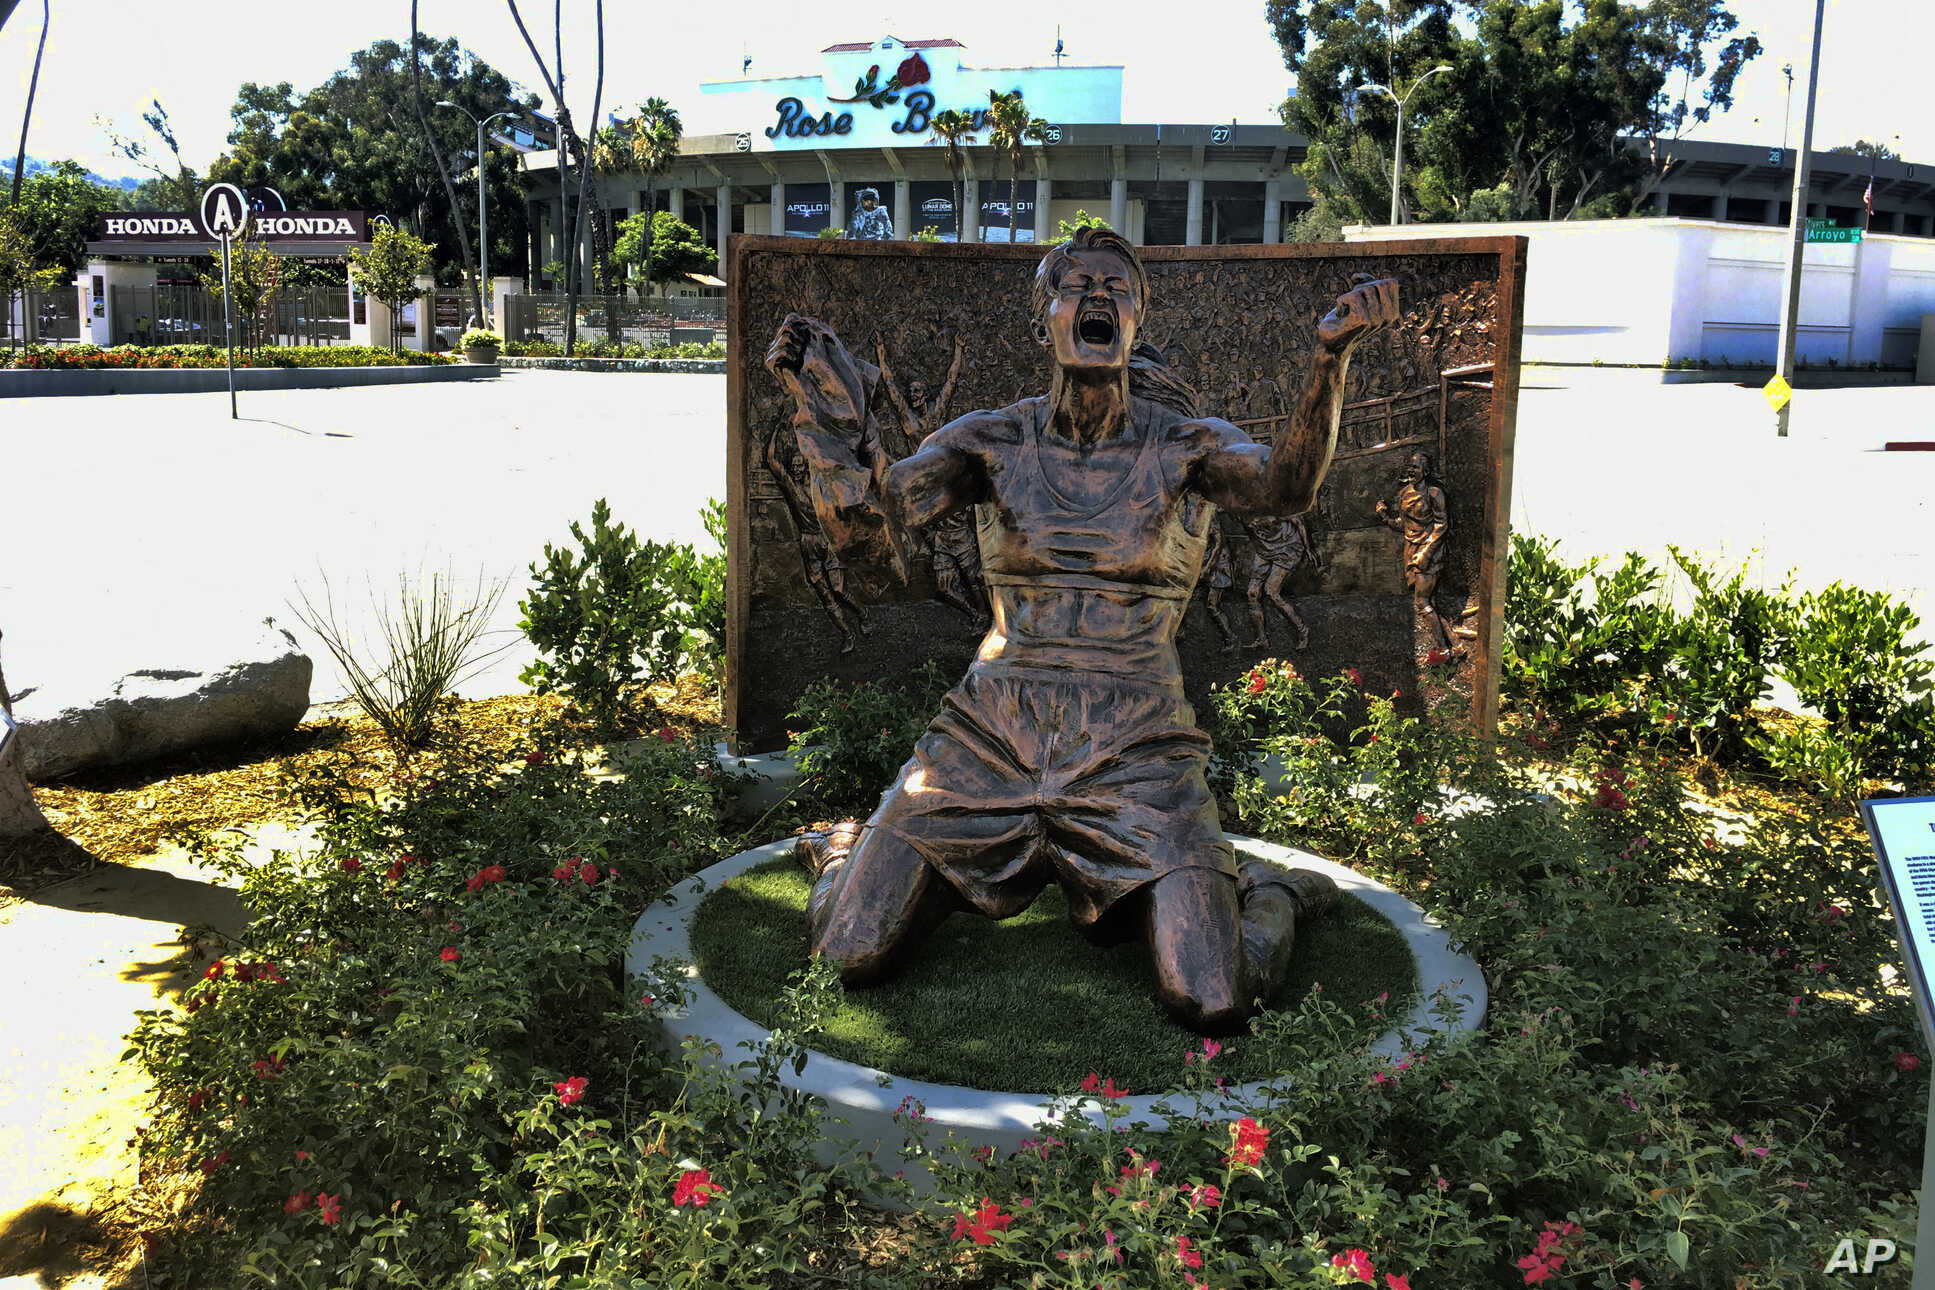 California Statue Honors Brandi Chastain's '99 World Cup Win | Voice